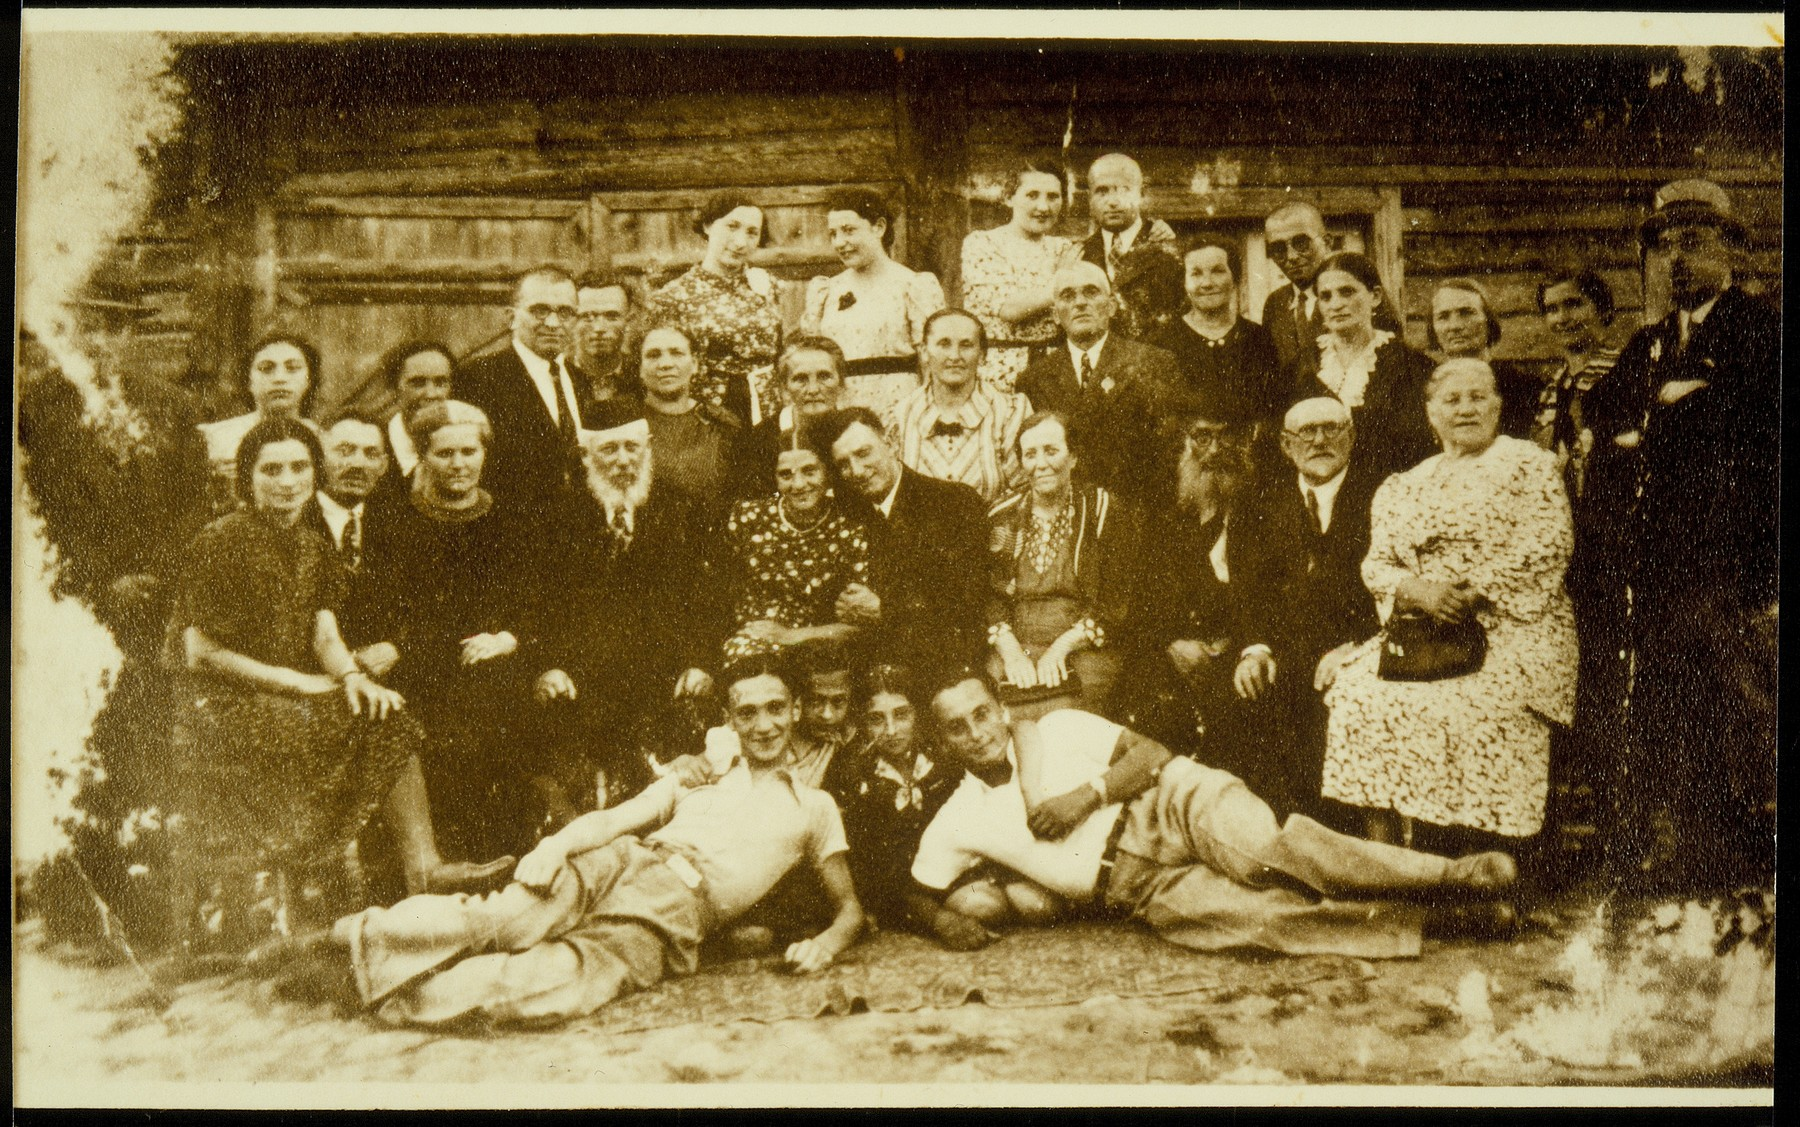 Wedding guests gather for a group portrait in front of the house of Leibke Levin.      Standing at the far right is Moshe Yaakov Botwinik, the principal of the Hebrew School and his wife.  Szeine Blacharowicz is standing in the back at the far left.  Moshe Yaakov Botwinik and his wife were murdered in the Radun ghetto.  Most of the people in the photo were murdered by the Germans in the September 1941 mass killing action.  Szeine Blacharowicz survived the Holocaust in hiding in the forest.